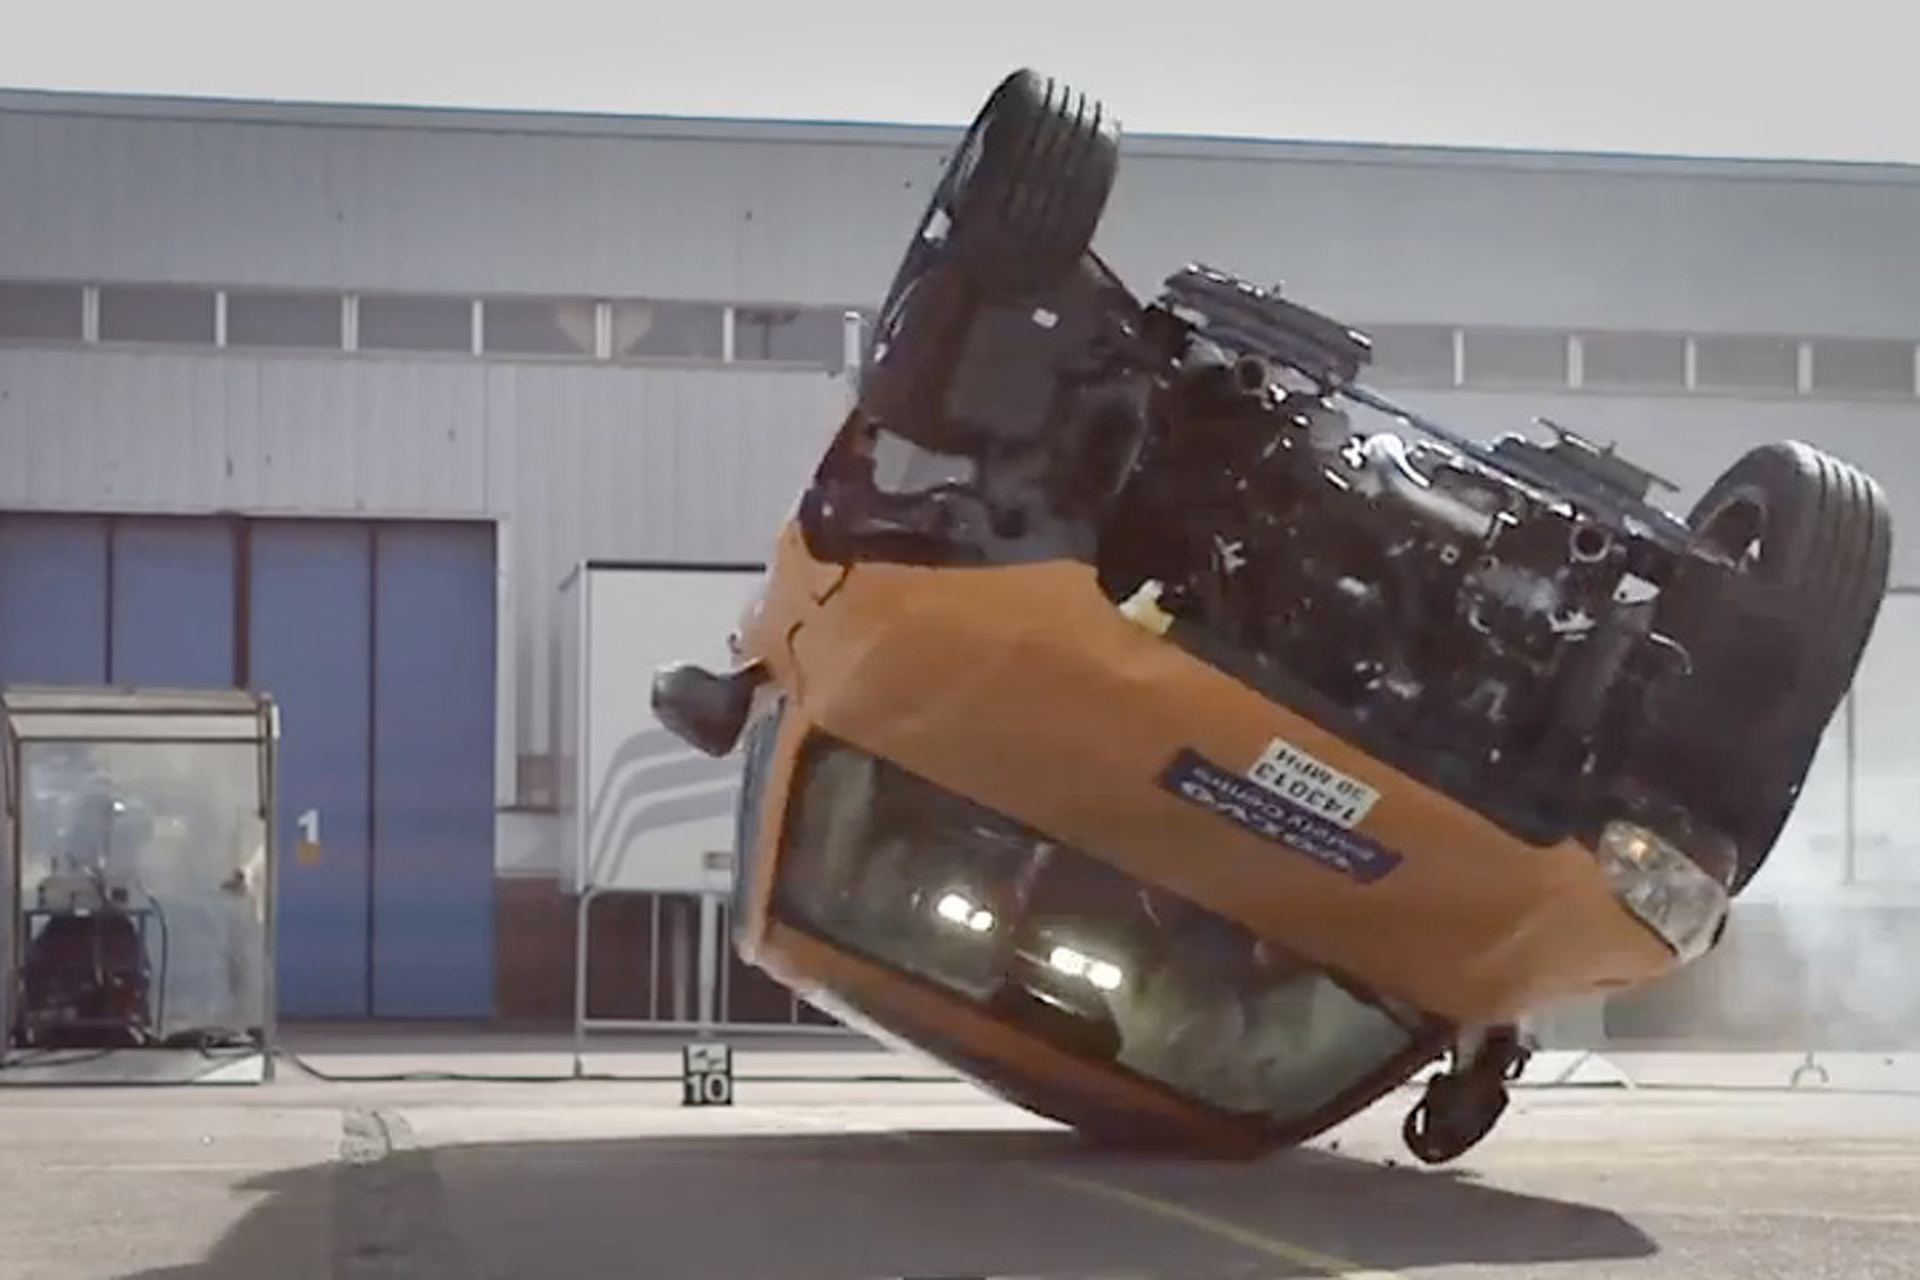 All-New Volvo XC90 Looks Promising in Crash Tests [w/Video]